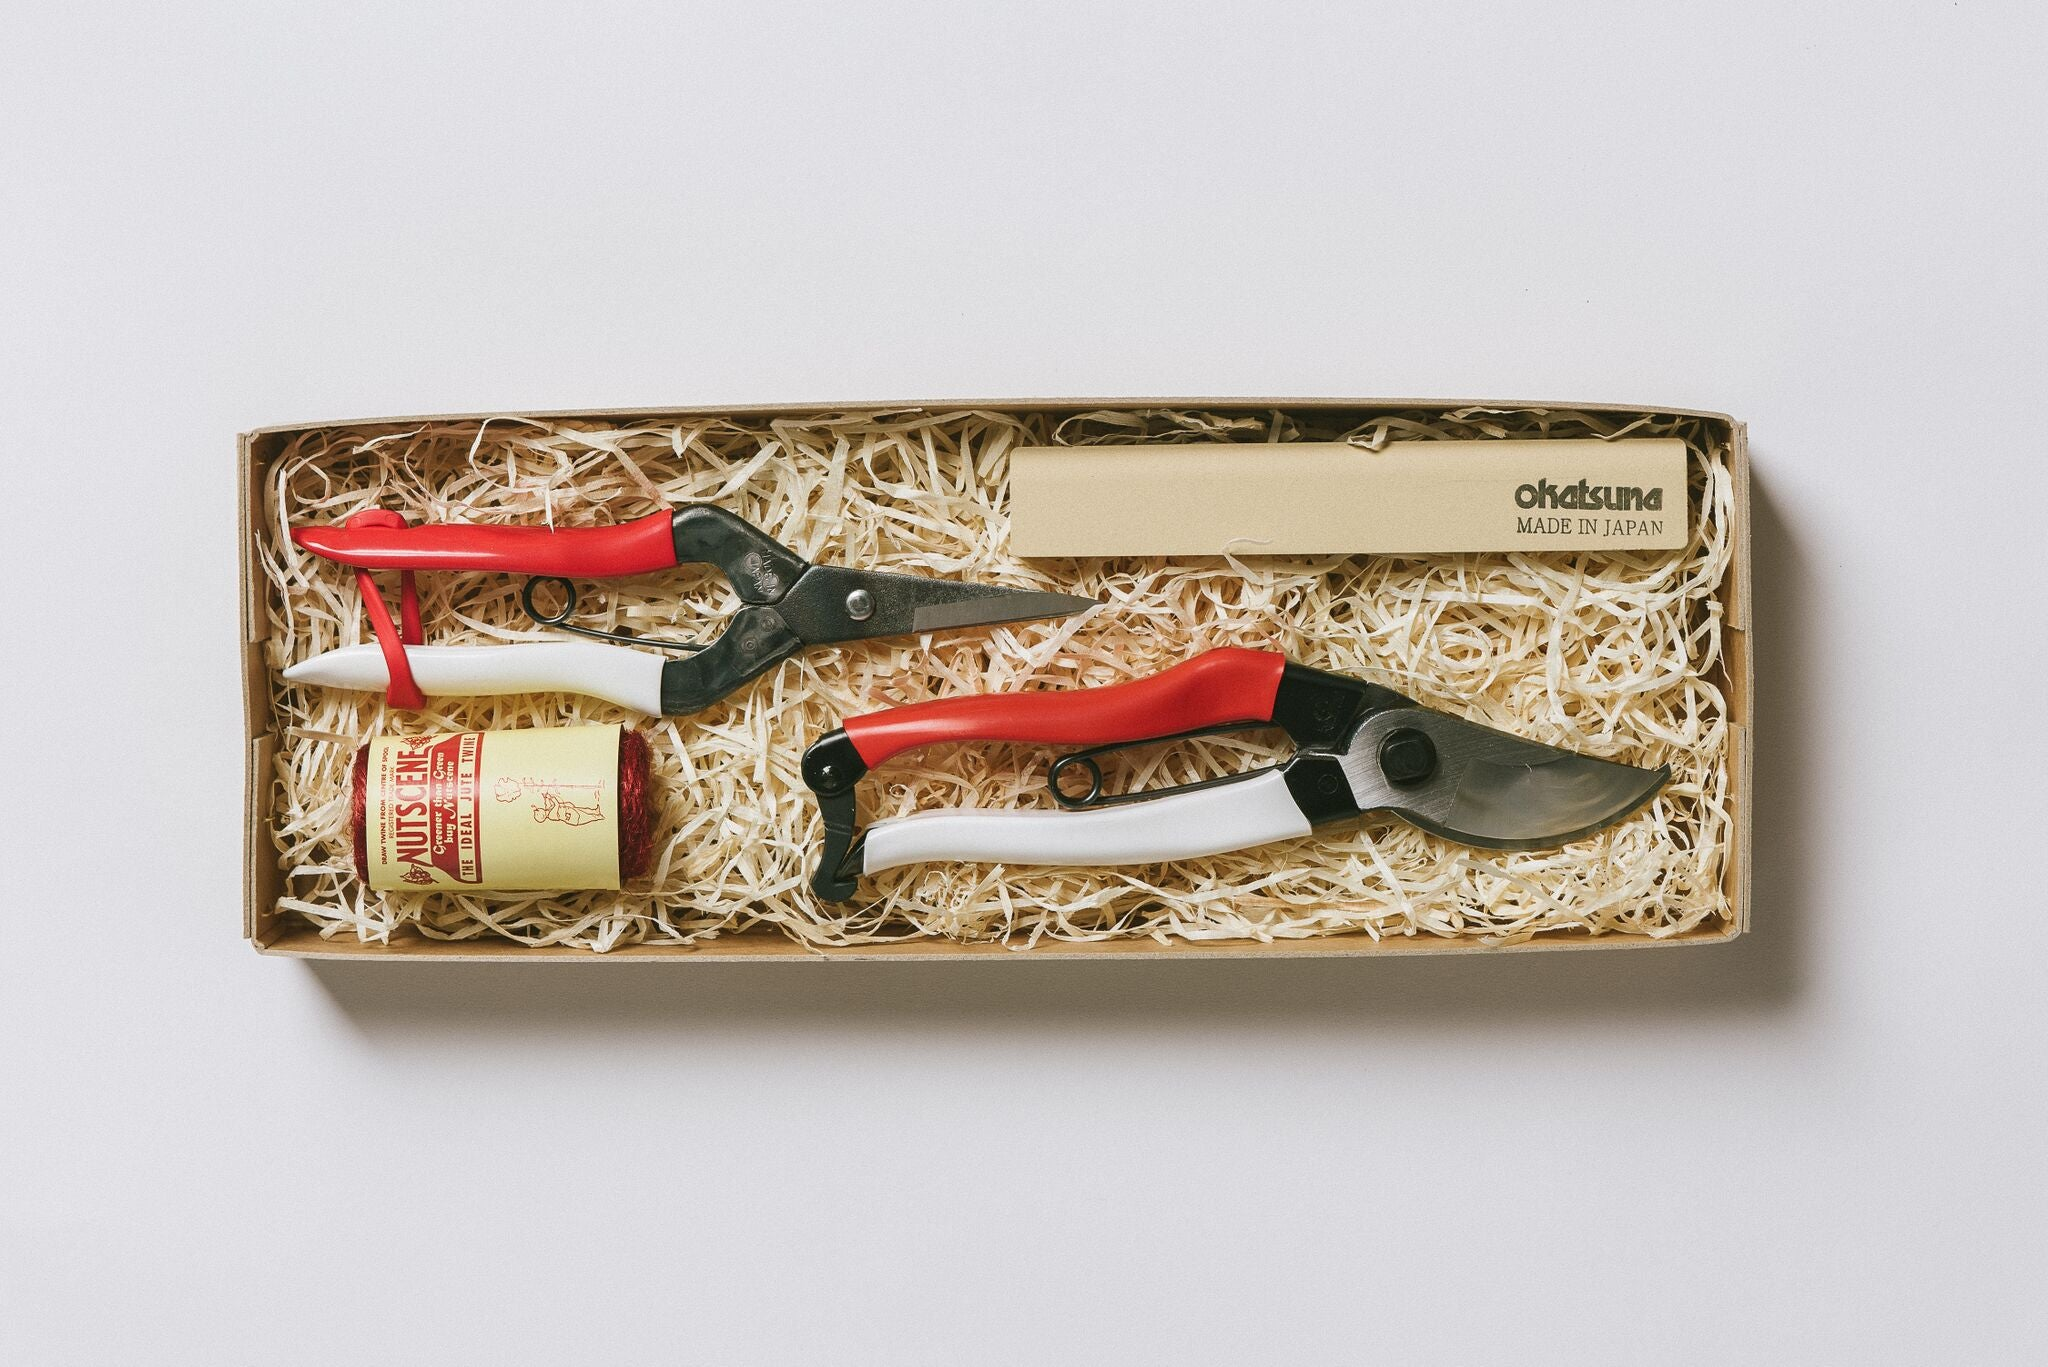 No. 8 Gardener's Gift Set - Secateurs, Snips, Twine and Whetstone